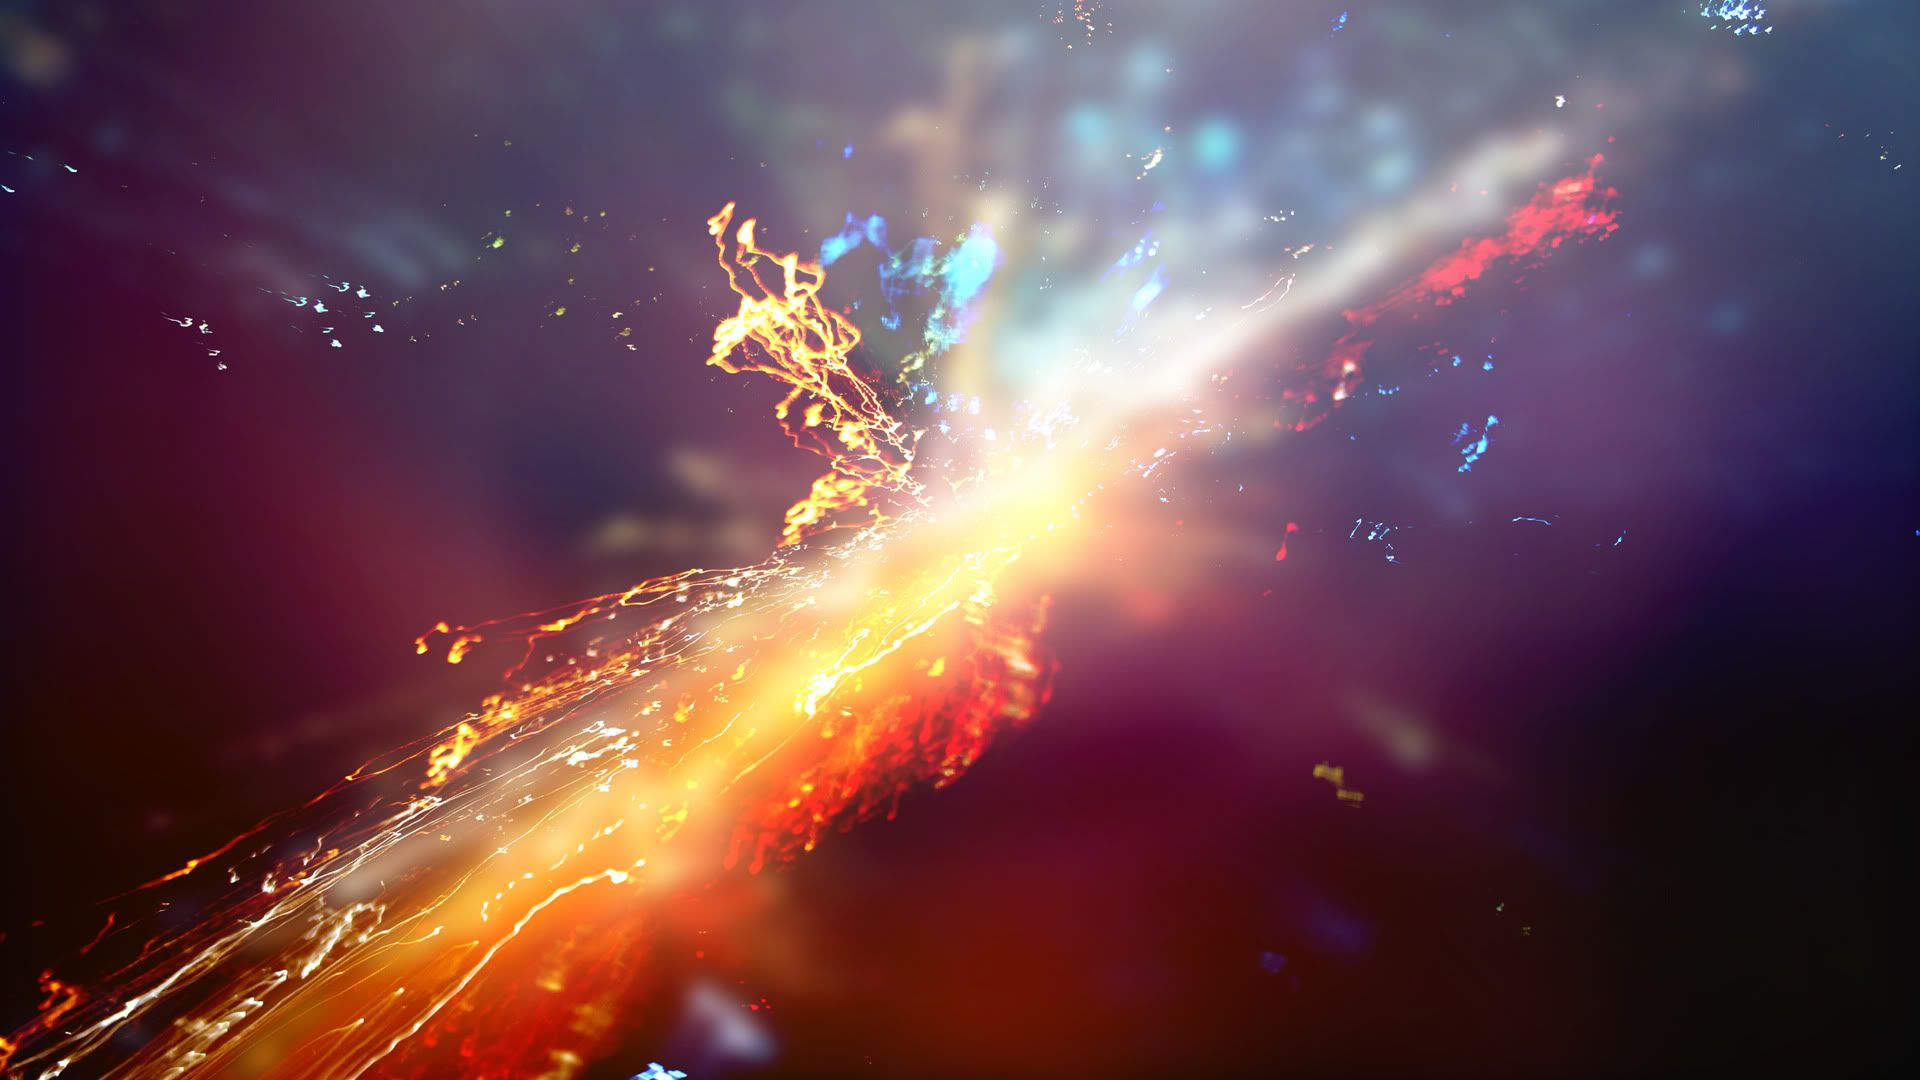 Theaqua Supernova Glowing Art Space Documentaries Colorful Wallpaper